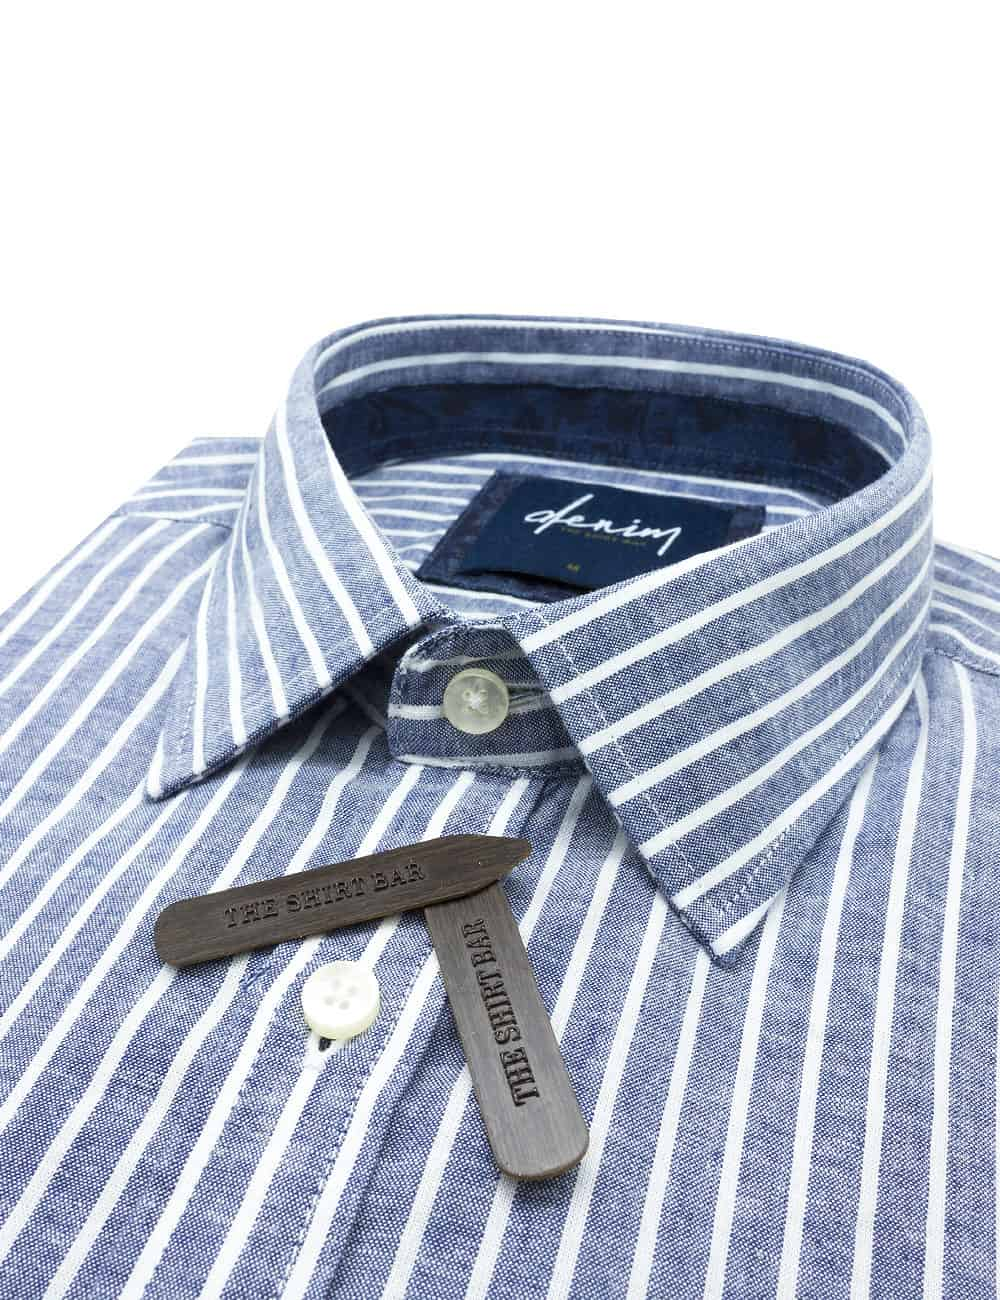 Relaxed Fit Navy with White Stripes Denim Collection 100% Cotton Long Sleeve Single Cuff Shirt RF2BA17.7